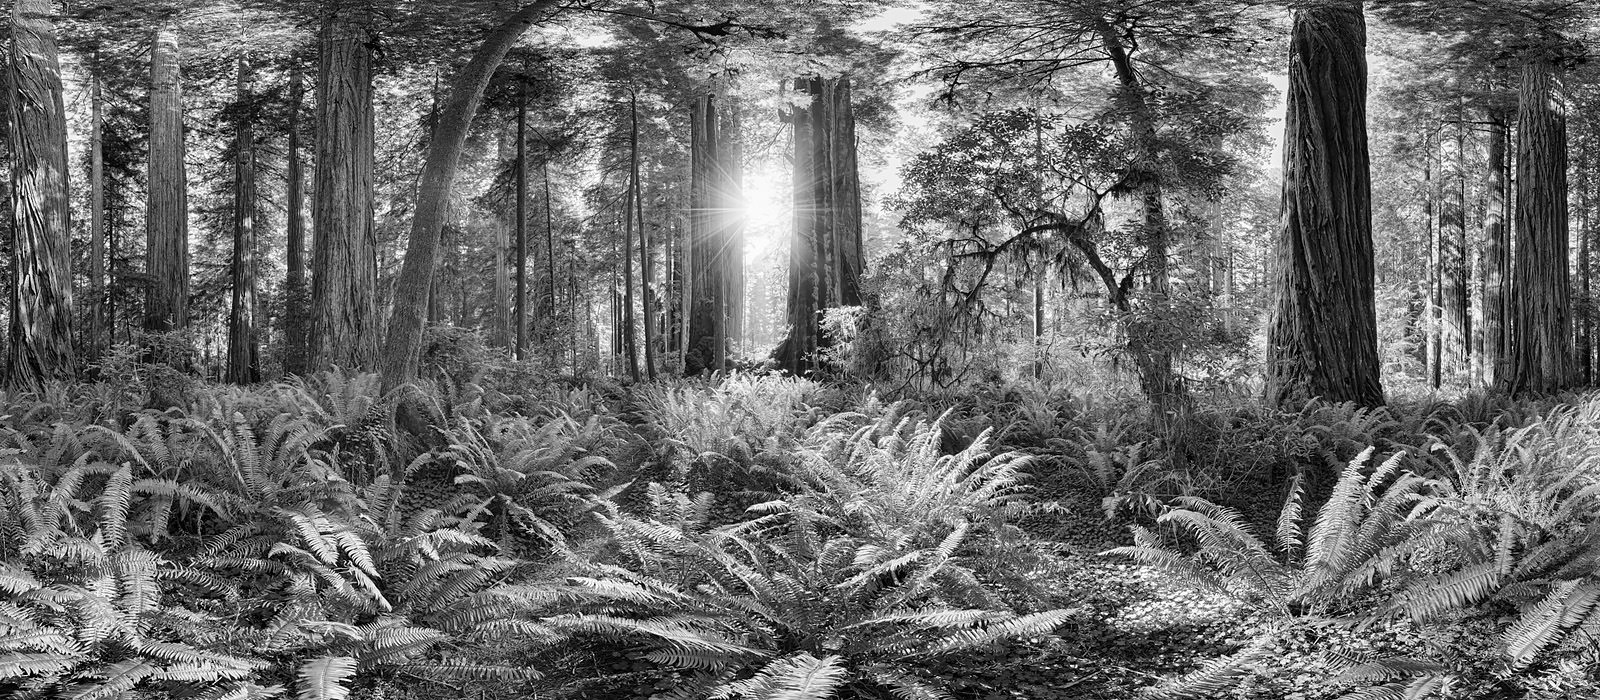 Redwoods Acrylic - California Black & White Fine Art Photography